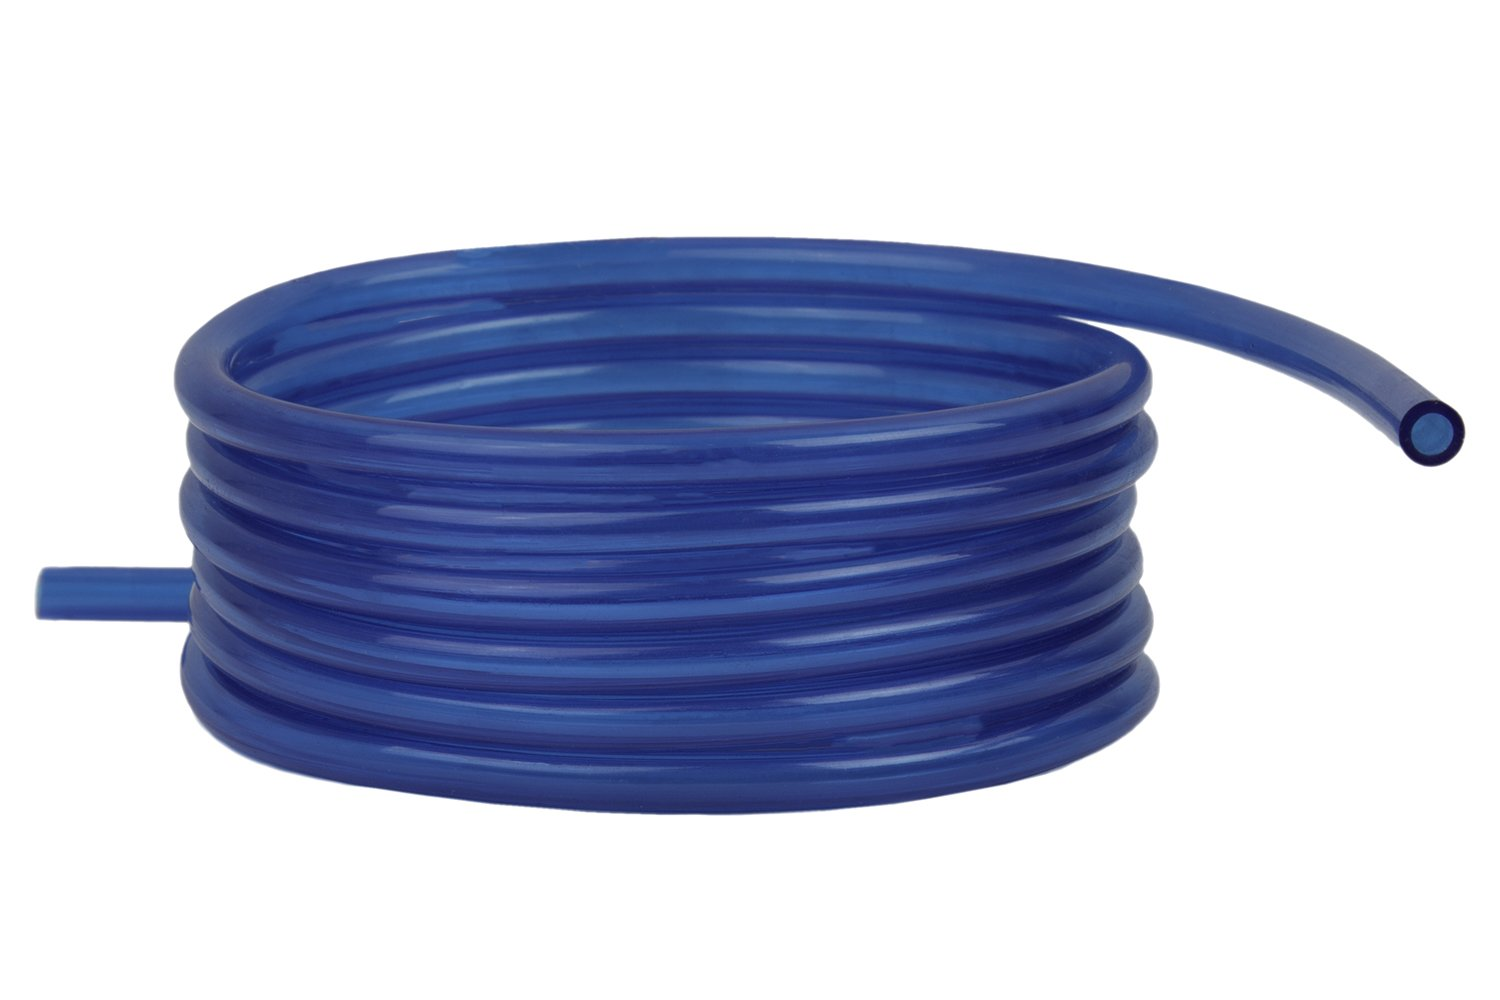 Raider Polyurethane Fuel Gas Line Tubing Hose Roll Blue (5 Ft. x 1/8 In.)